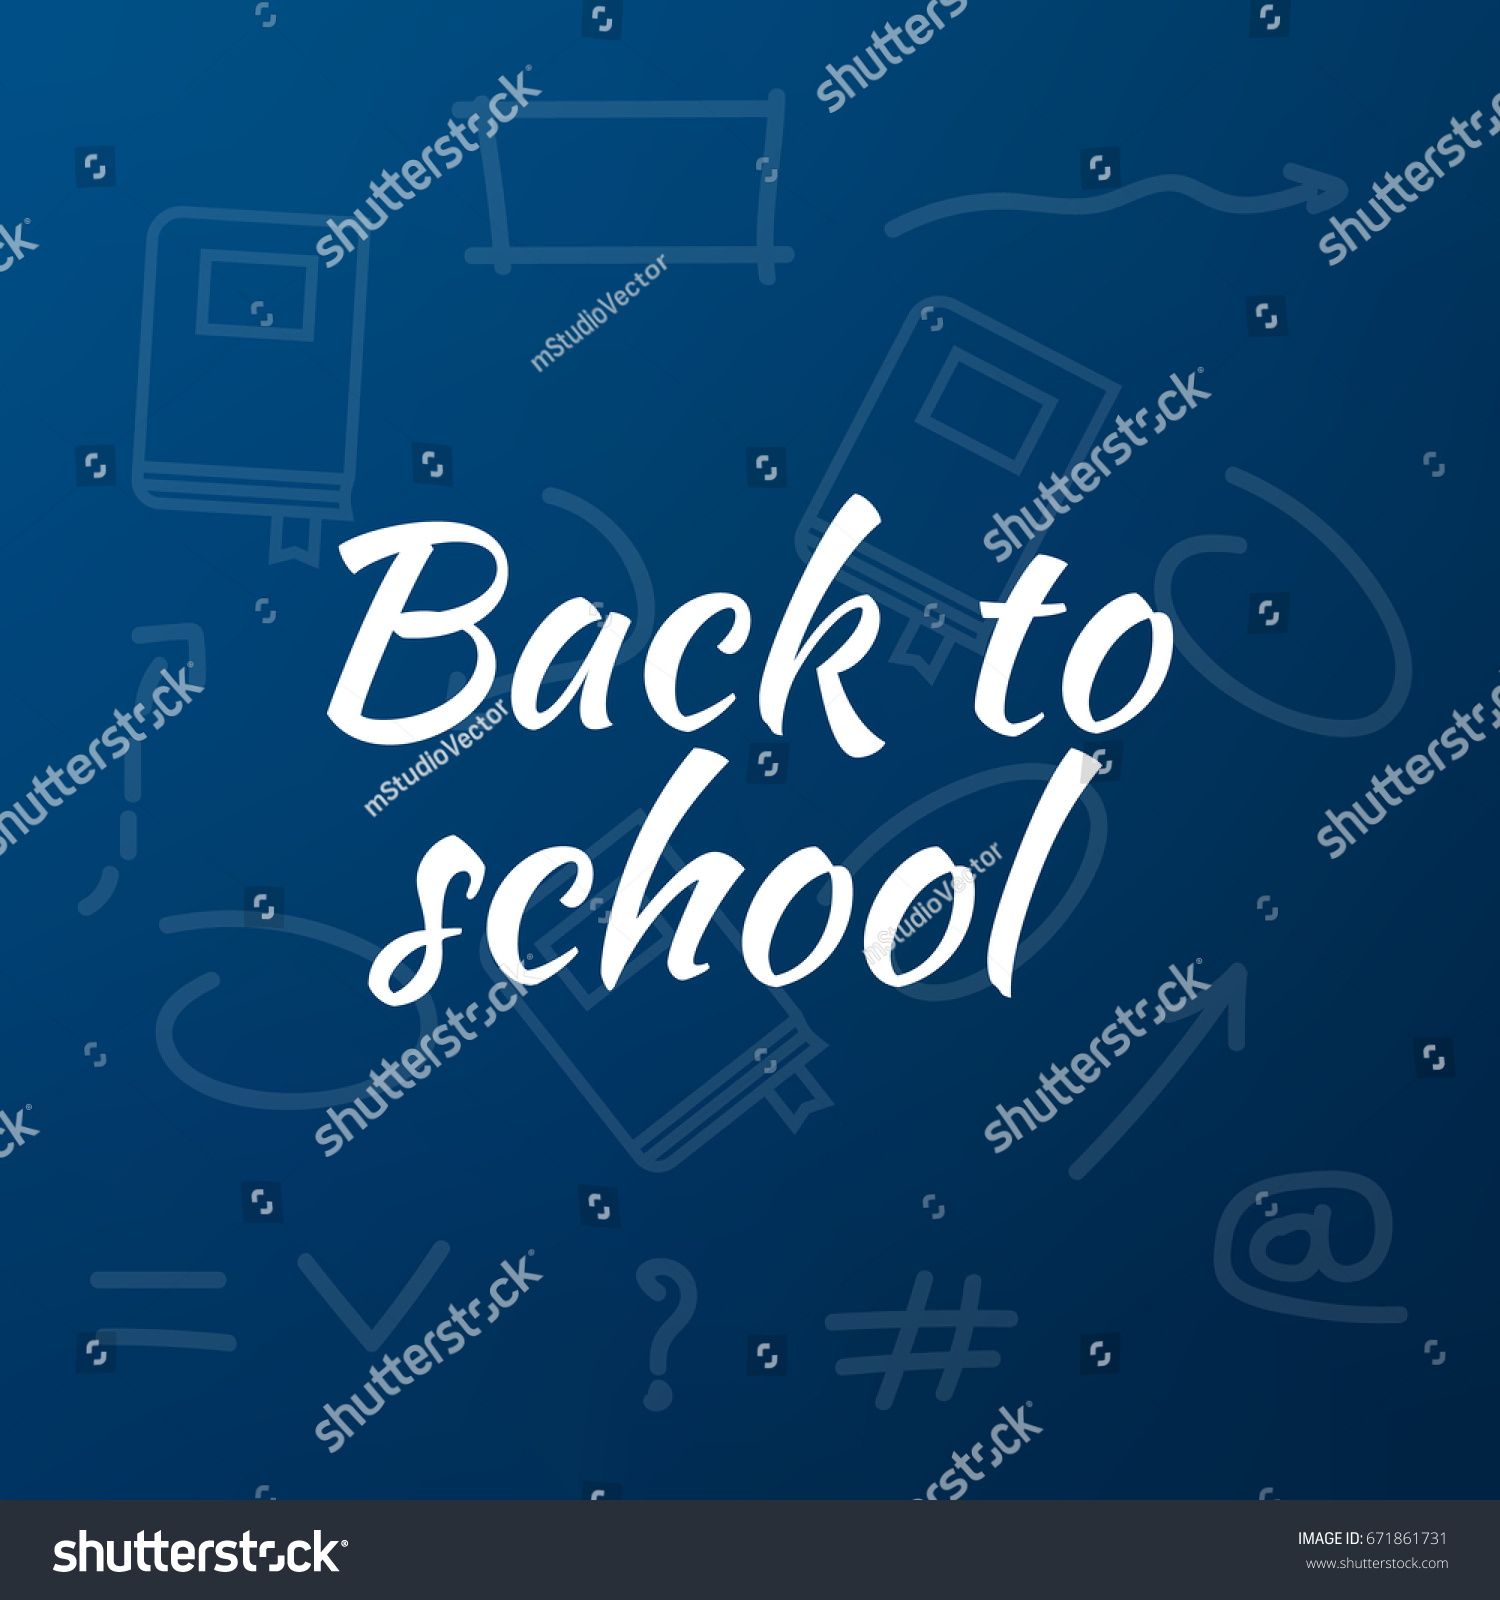 Poster design education - Back To School Poster Design Education Background Back To School Vector